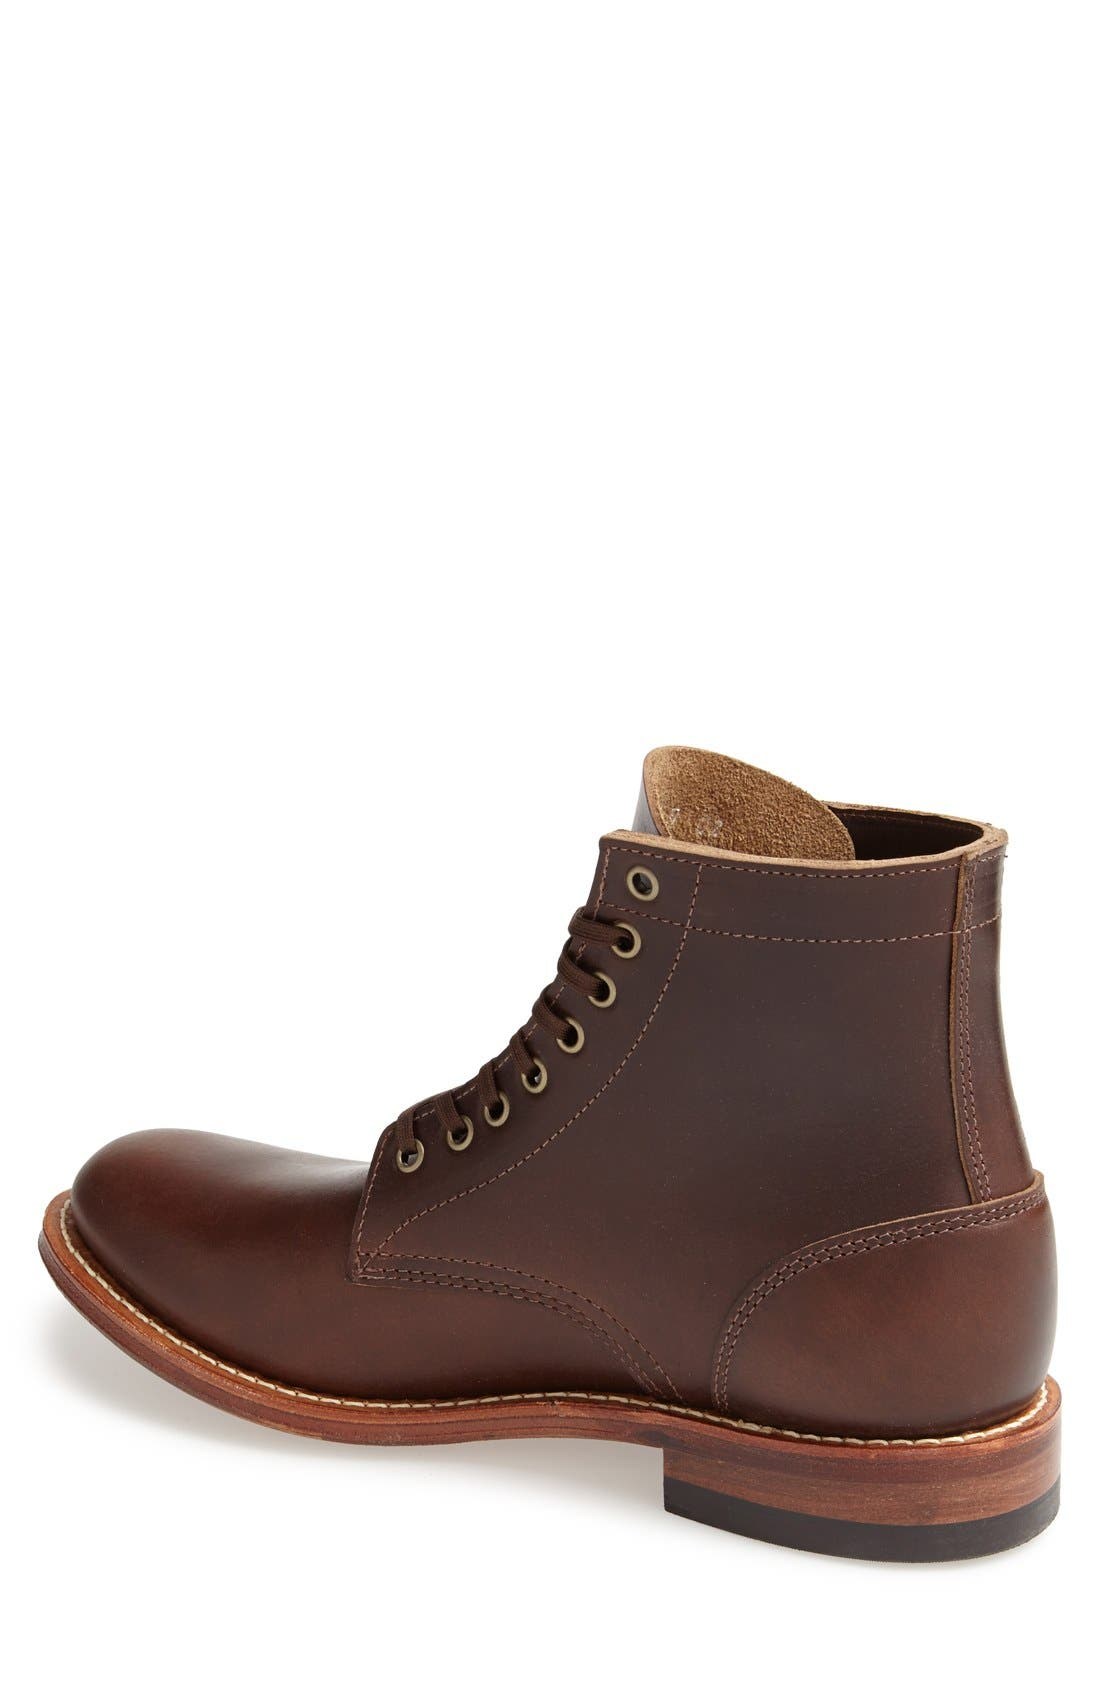 Plain Toe Trench Boot,                             Alternate thumbnail 3, color,                             BROWN